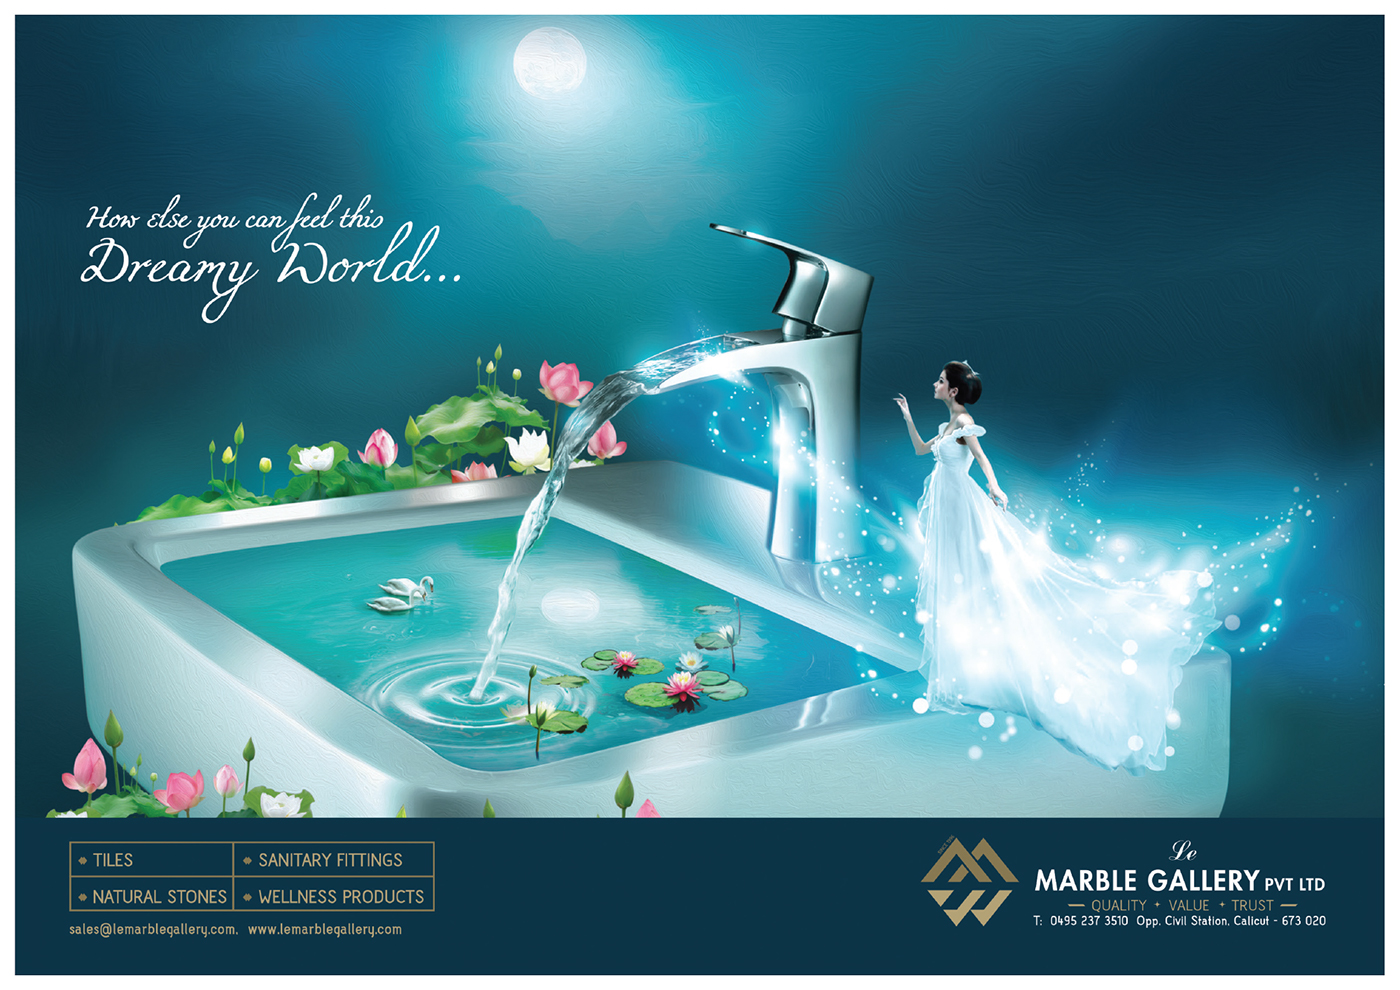 have a look at some of the capios creative advertisements our focus was on linking the product